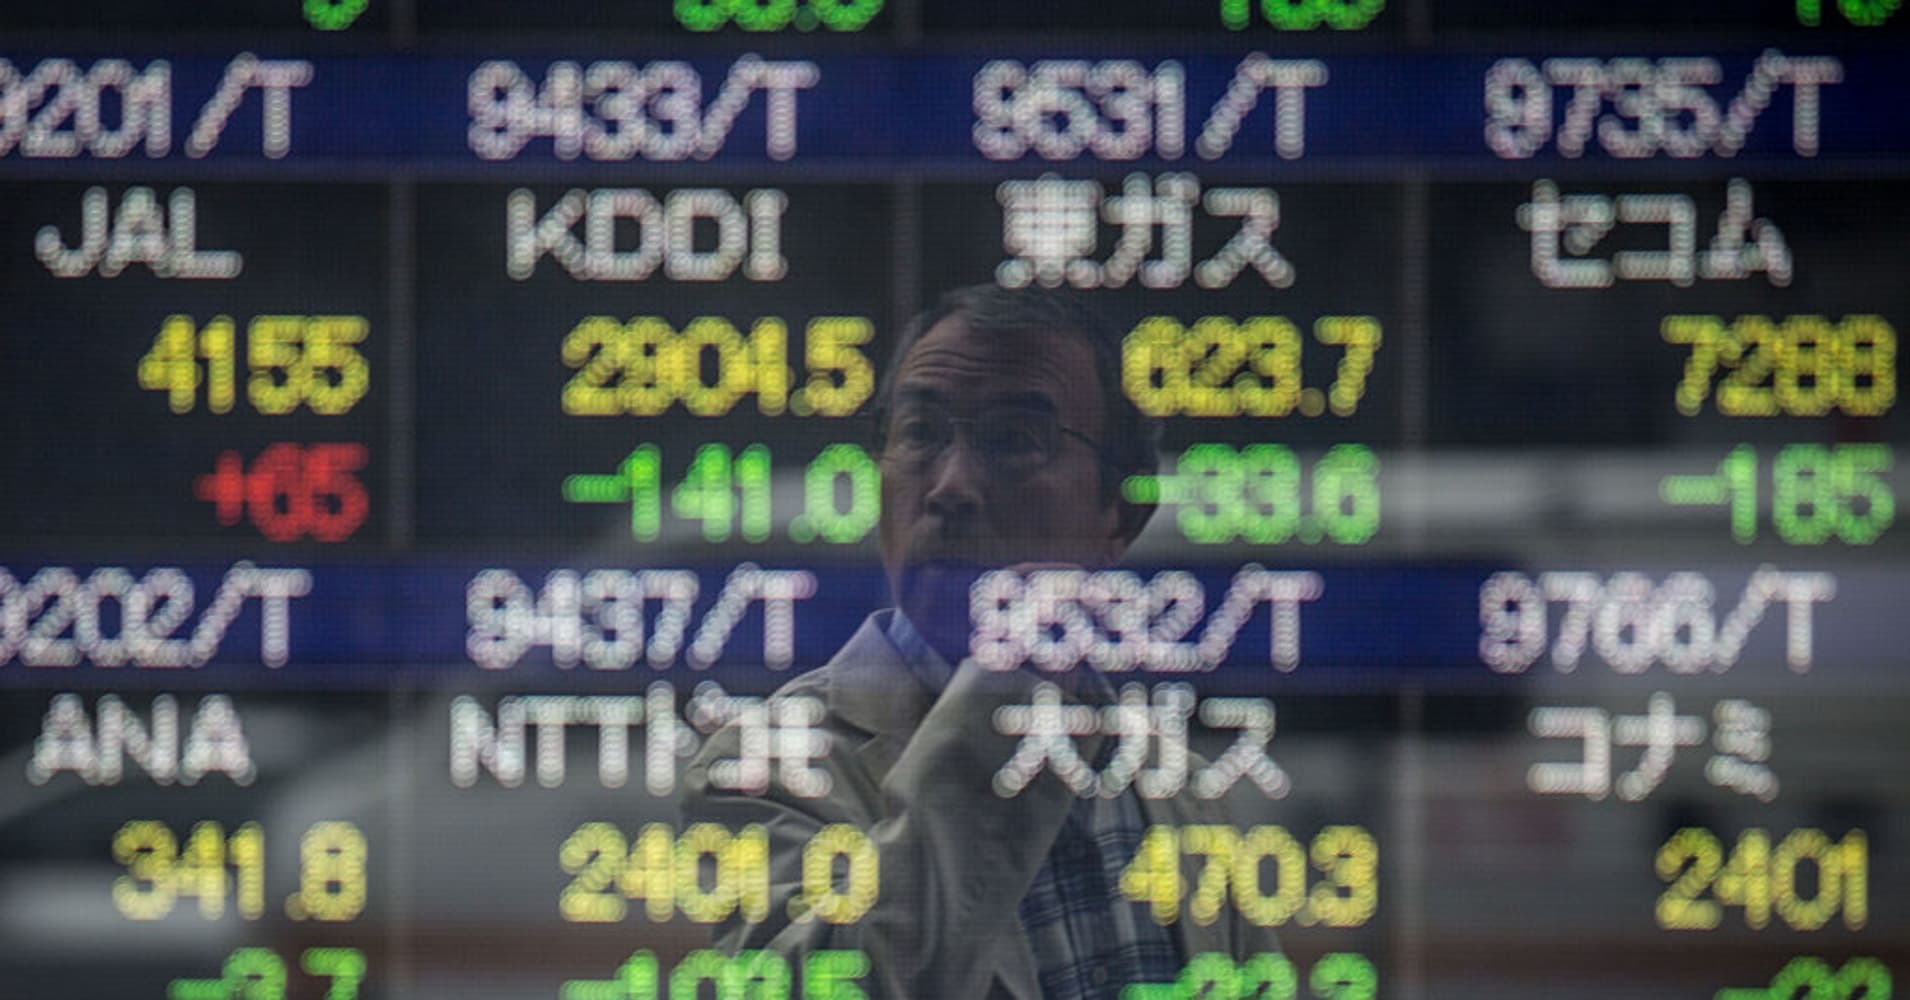 Stocks in Asia decline, tracking losses seen on Wall Street after Tillerson ouster